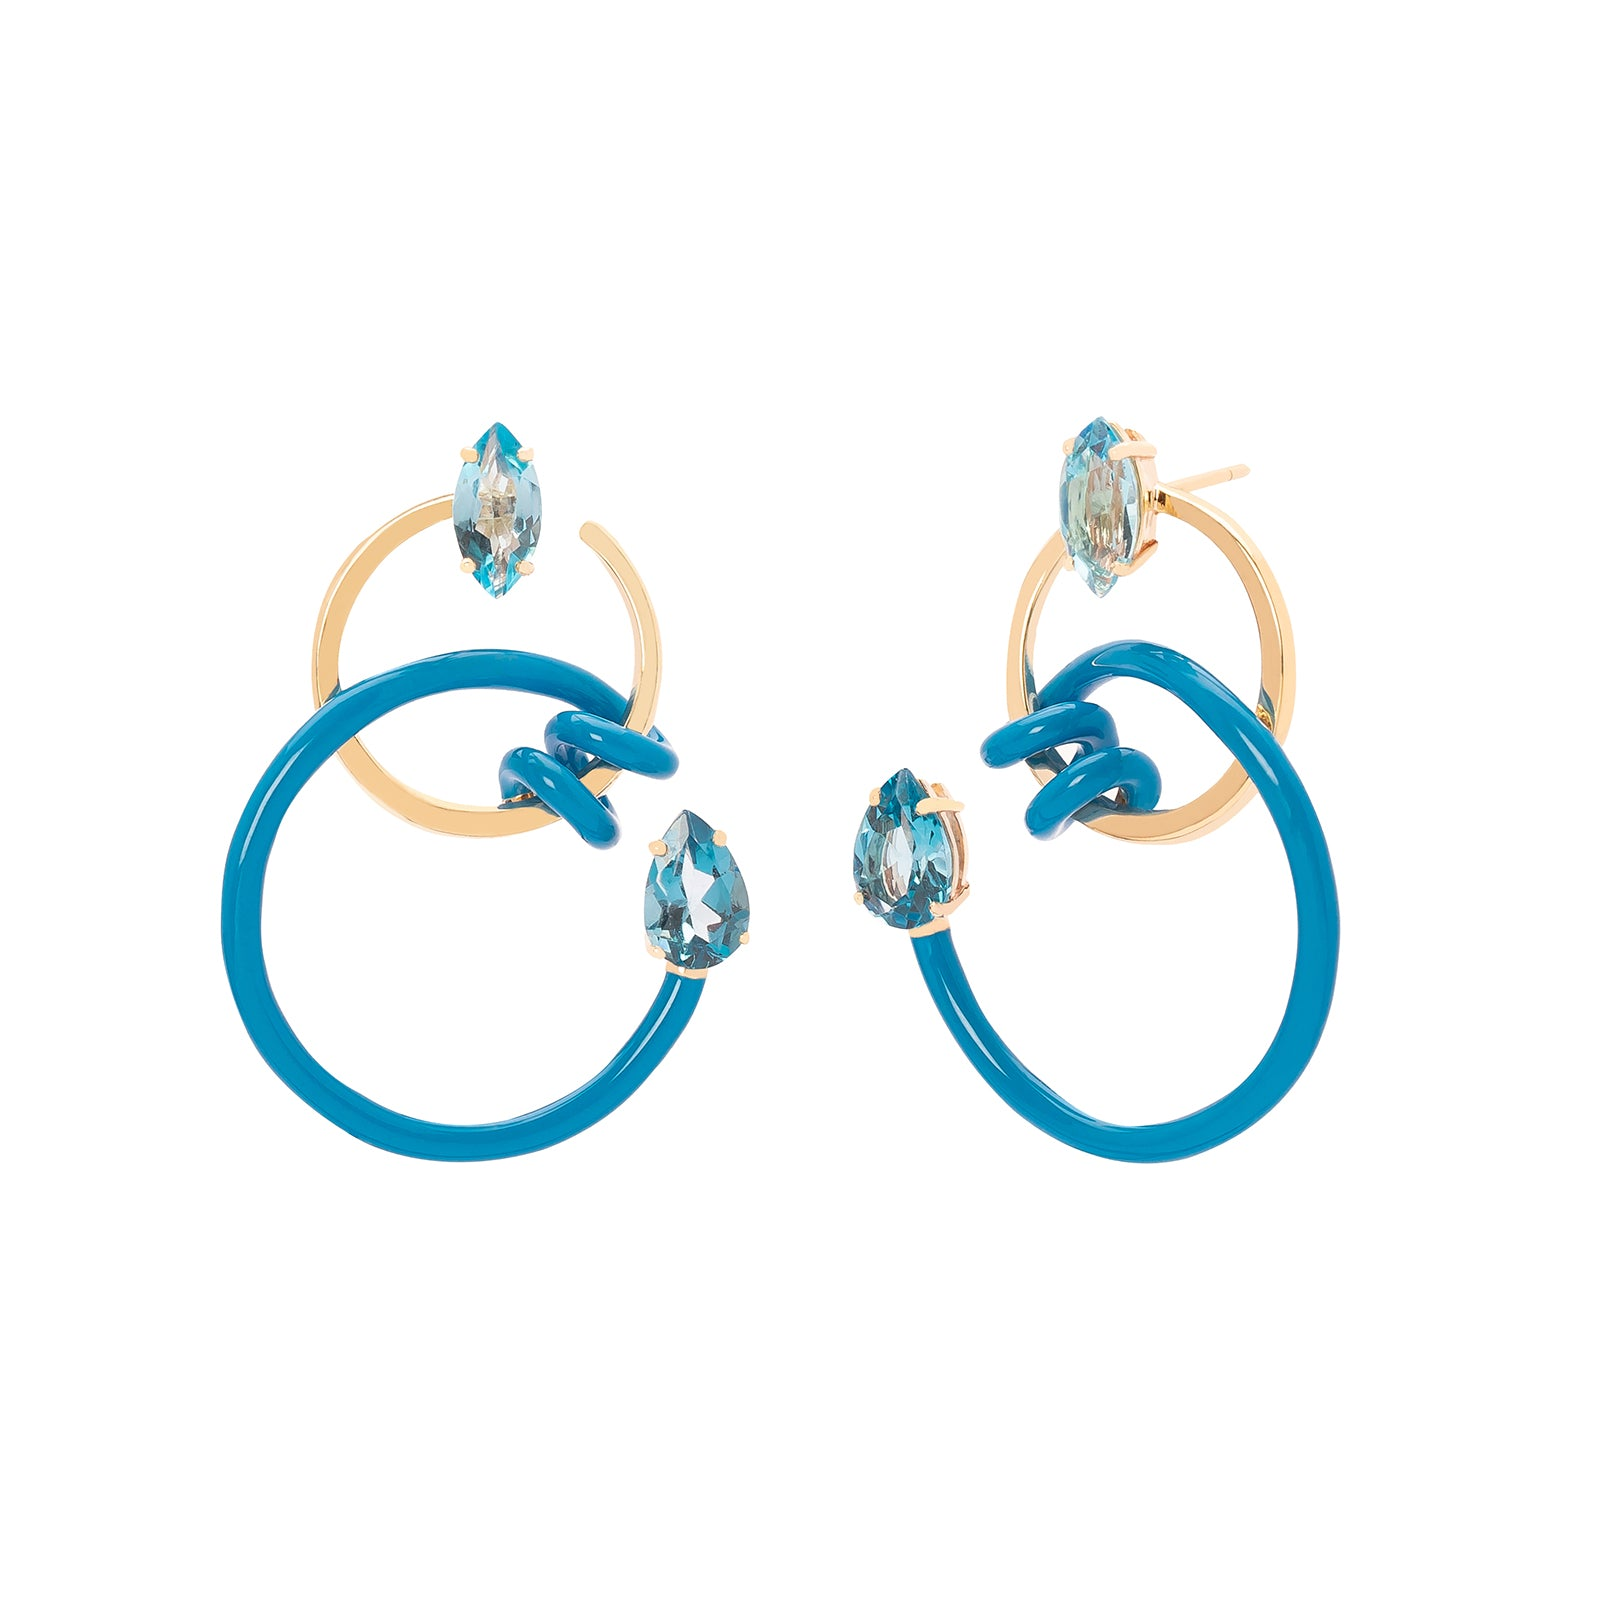 Bea Bongiasca Single Curl Vine Earrings - Turquoise Enamel - Earrings - Broken English Jewelry